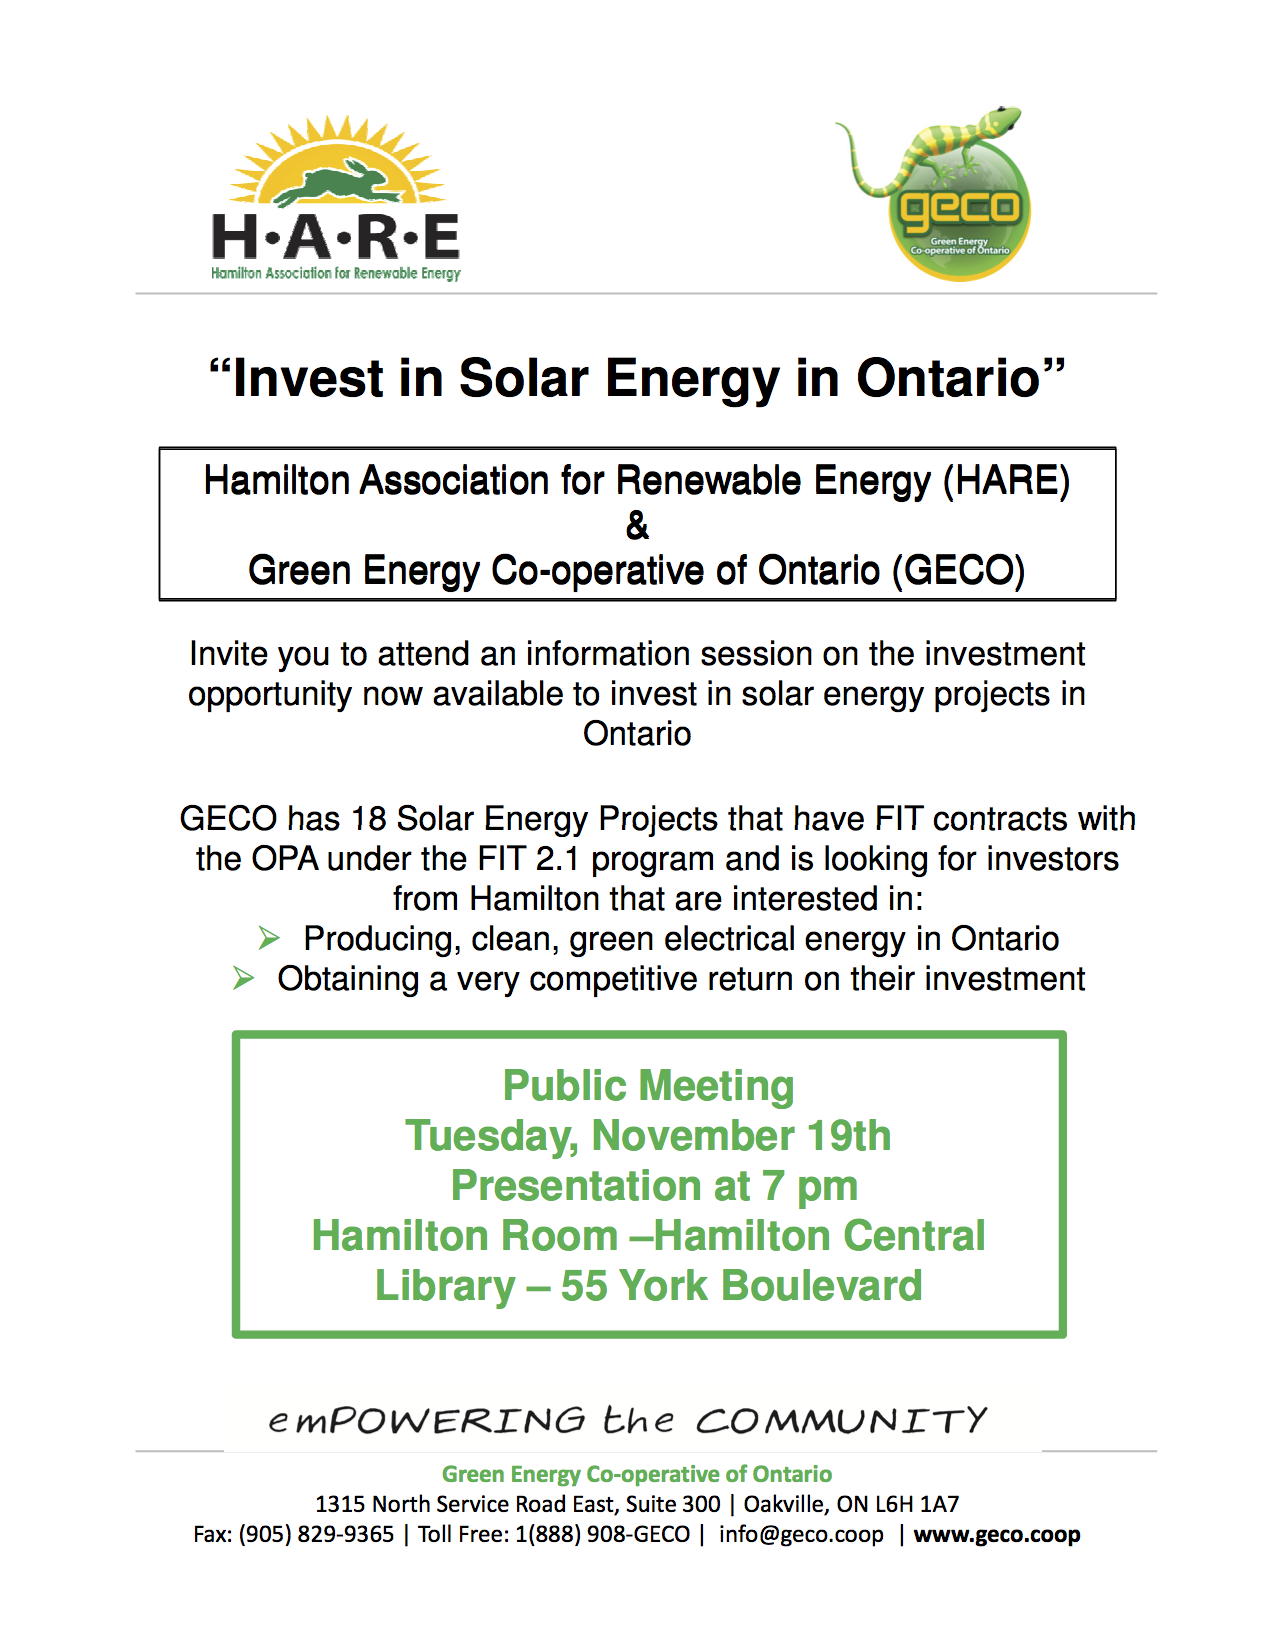 Invitation to Hamilton Public Meeting for HARE & GECO Investment Presentation Nov 19 2013